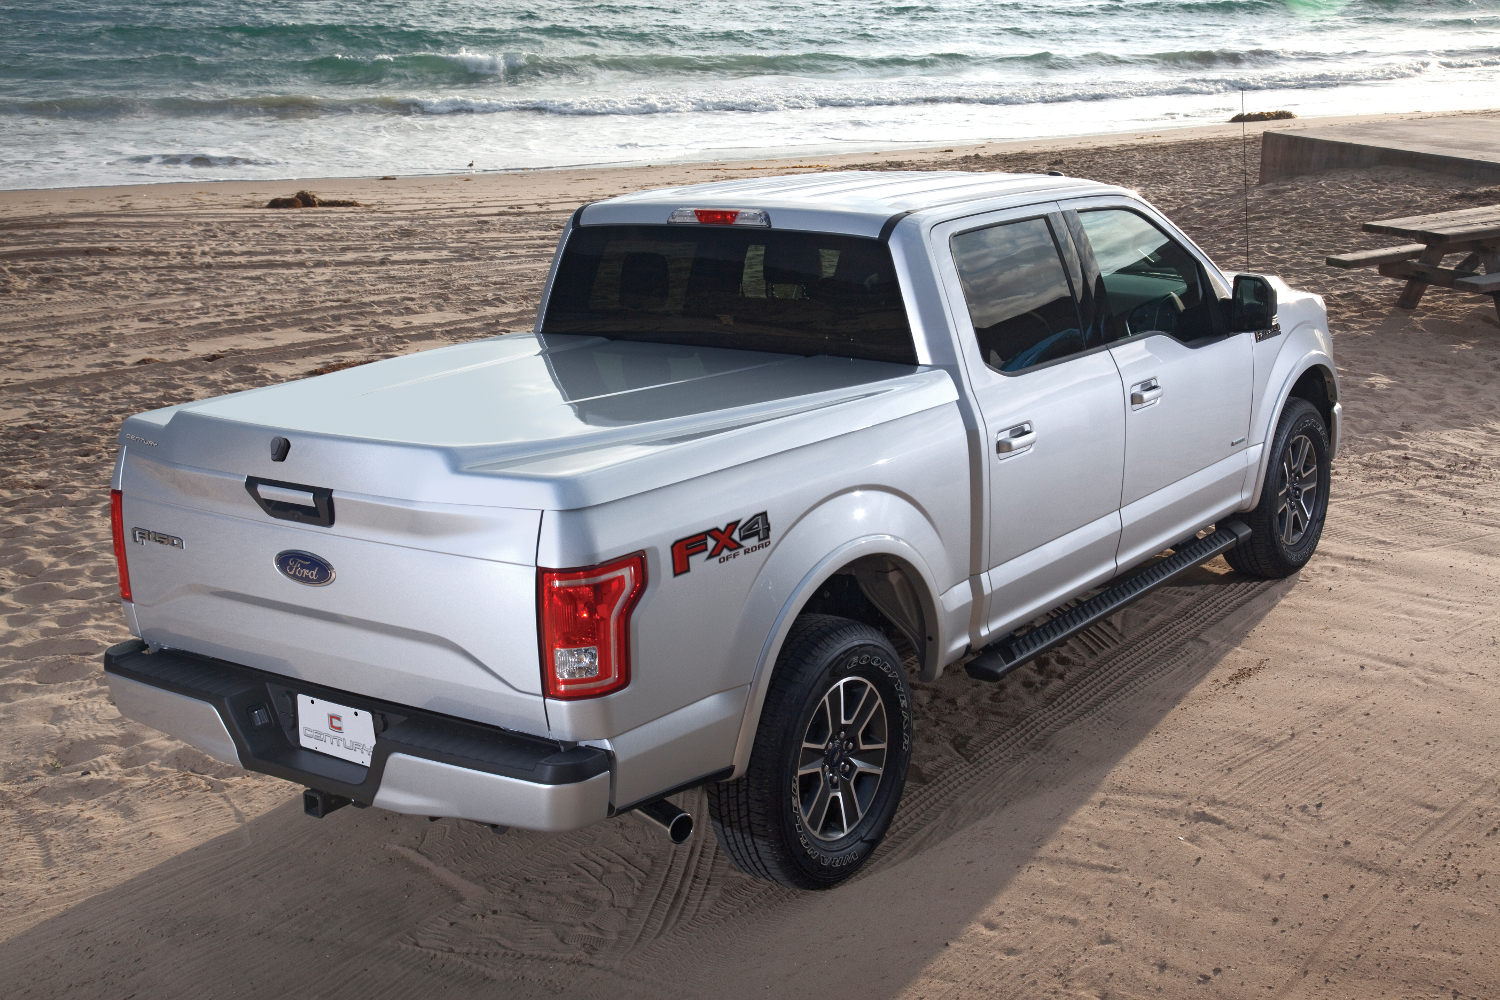 A Century Tonneau Cover Silhouette shown installed on a Ford F150.